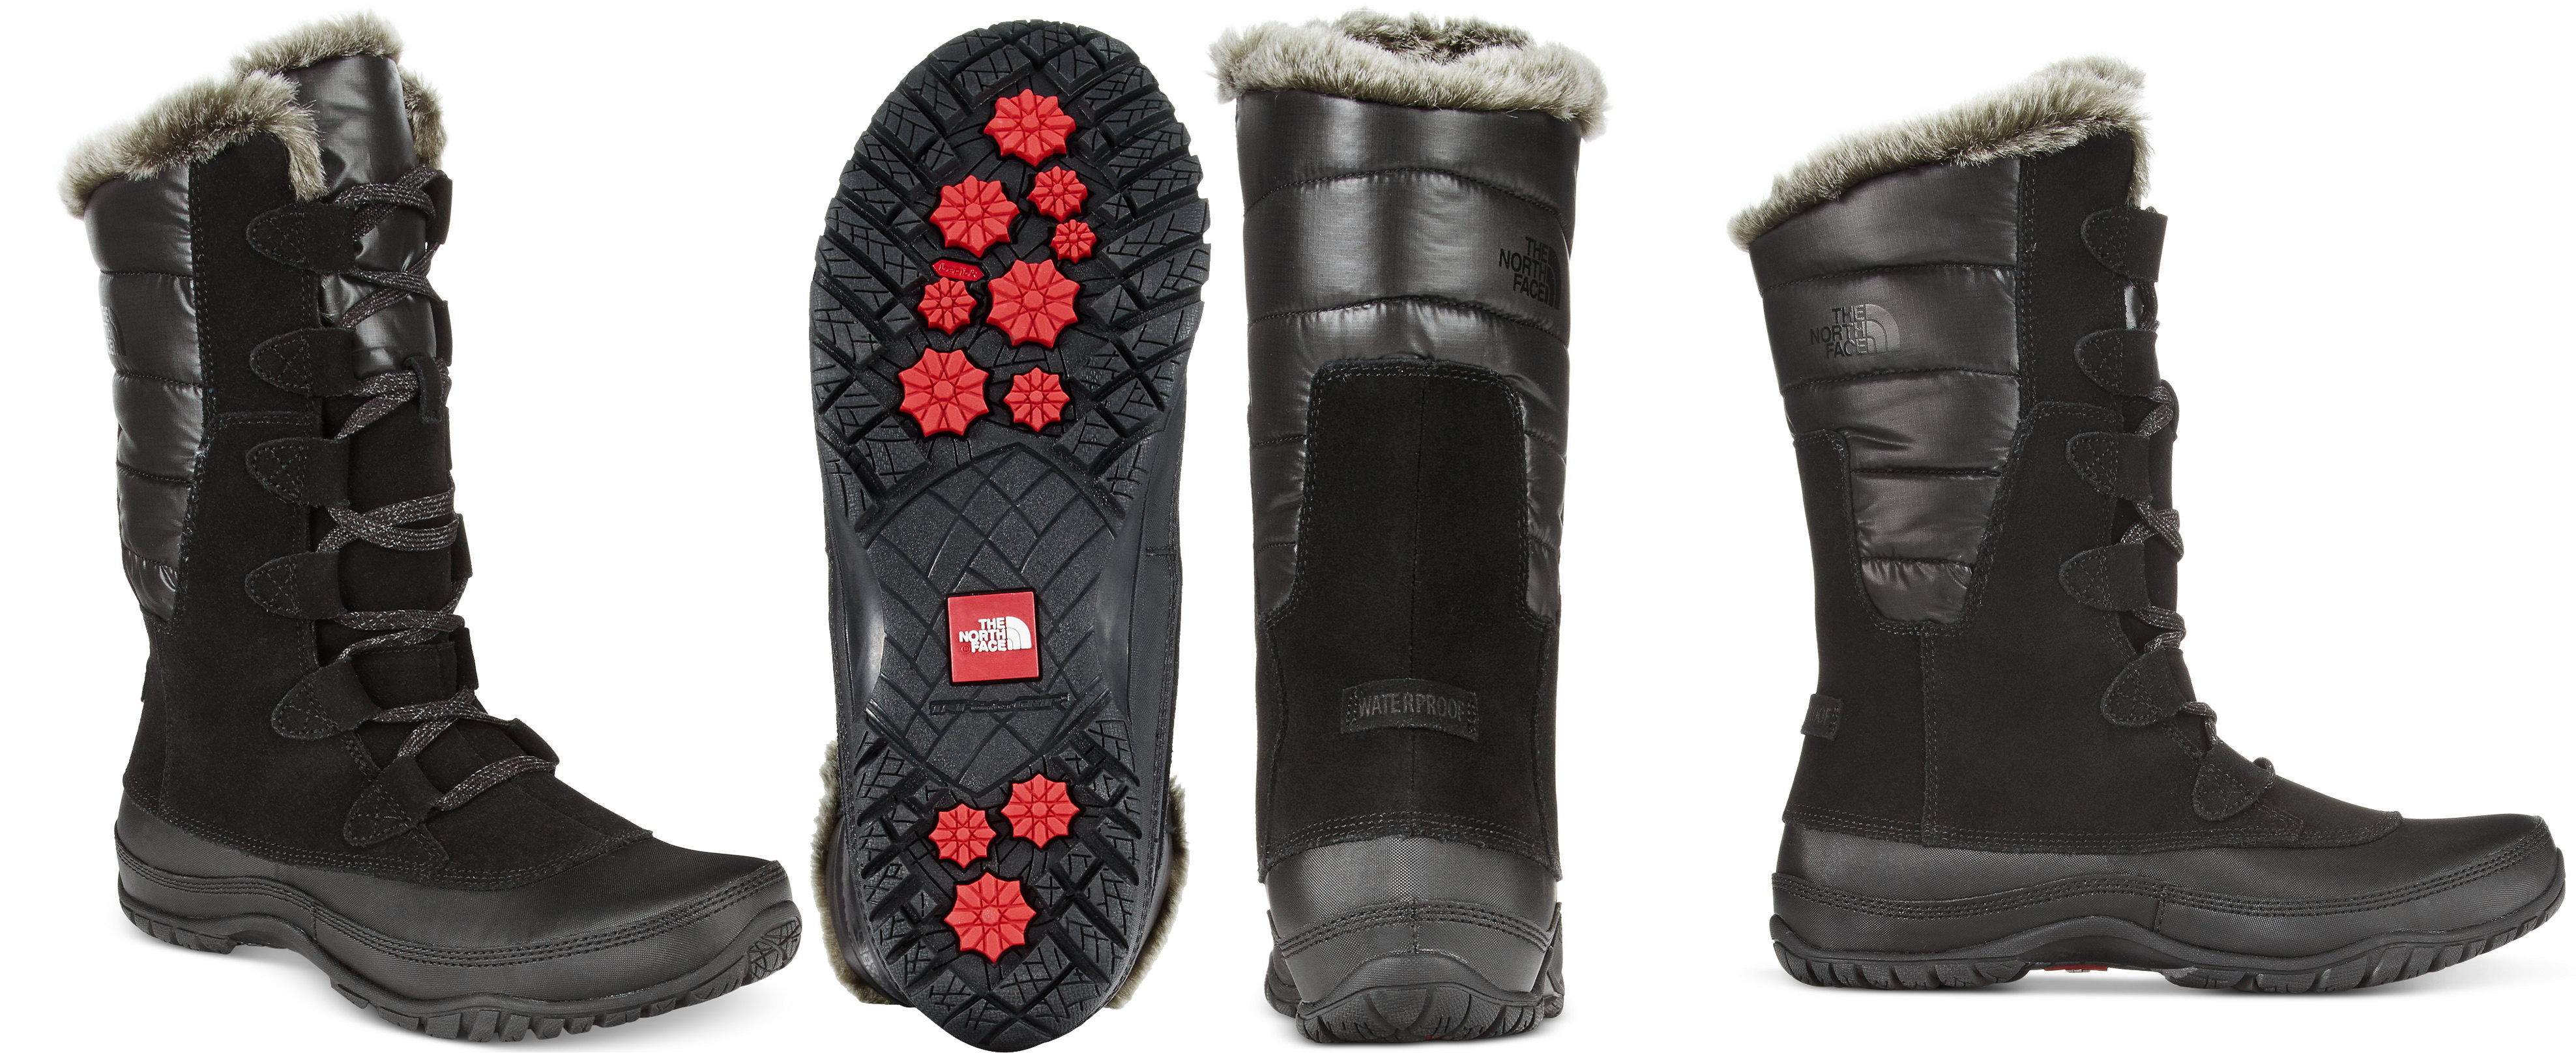 The North Face Women's Nuptse Purna Faux-fur boots in black